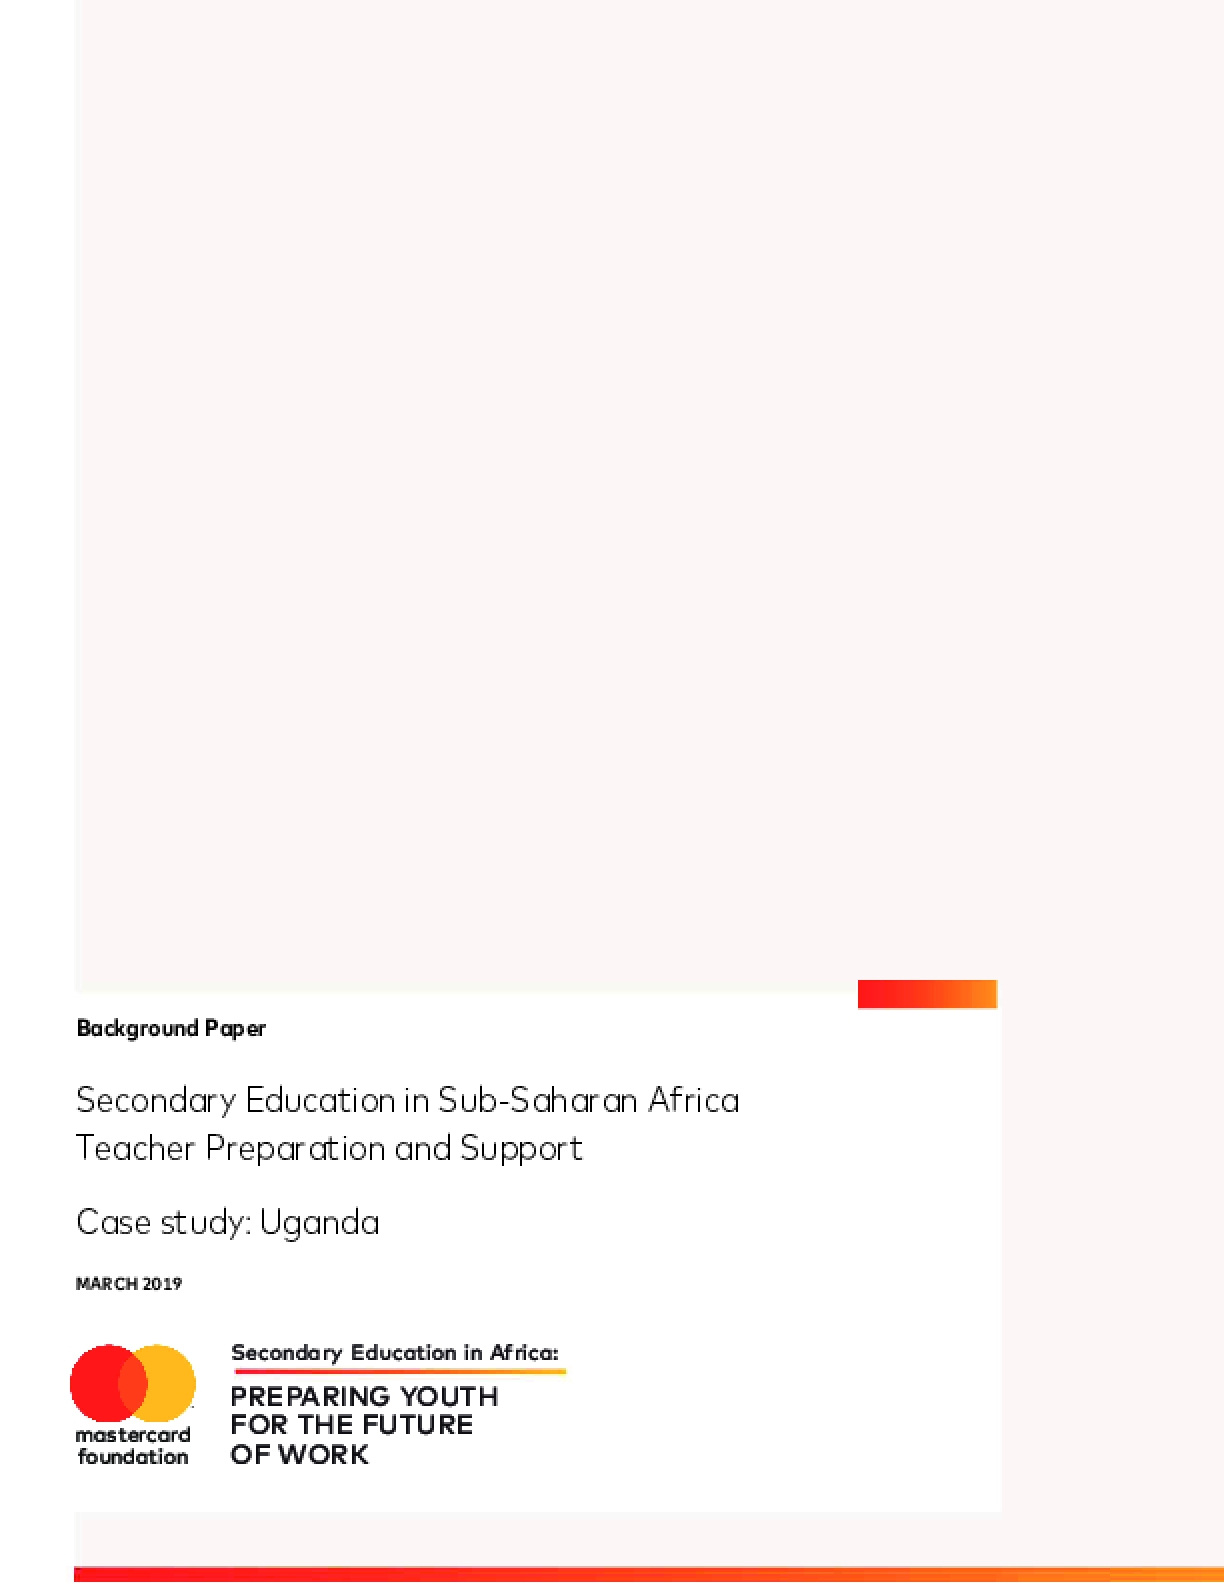 Secondary Education in Sub-Saharan Africa Teacher Preparation Deployment and Support Case Study Uganda